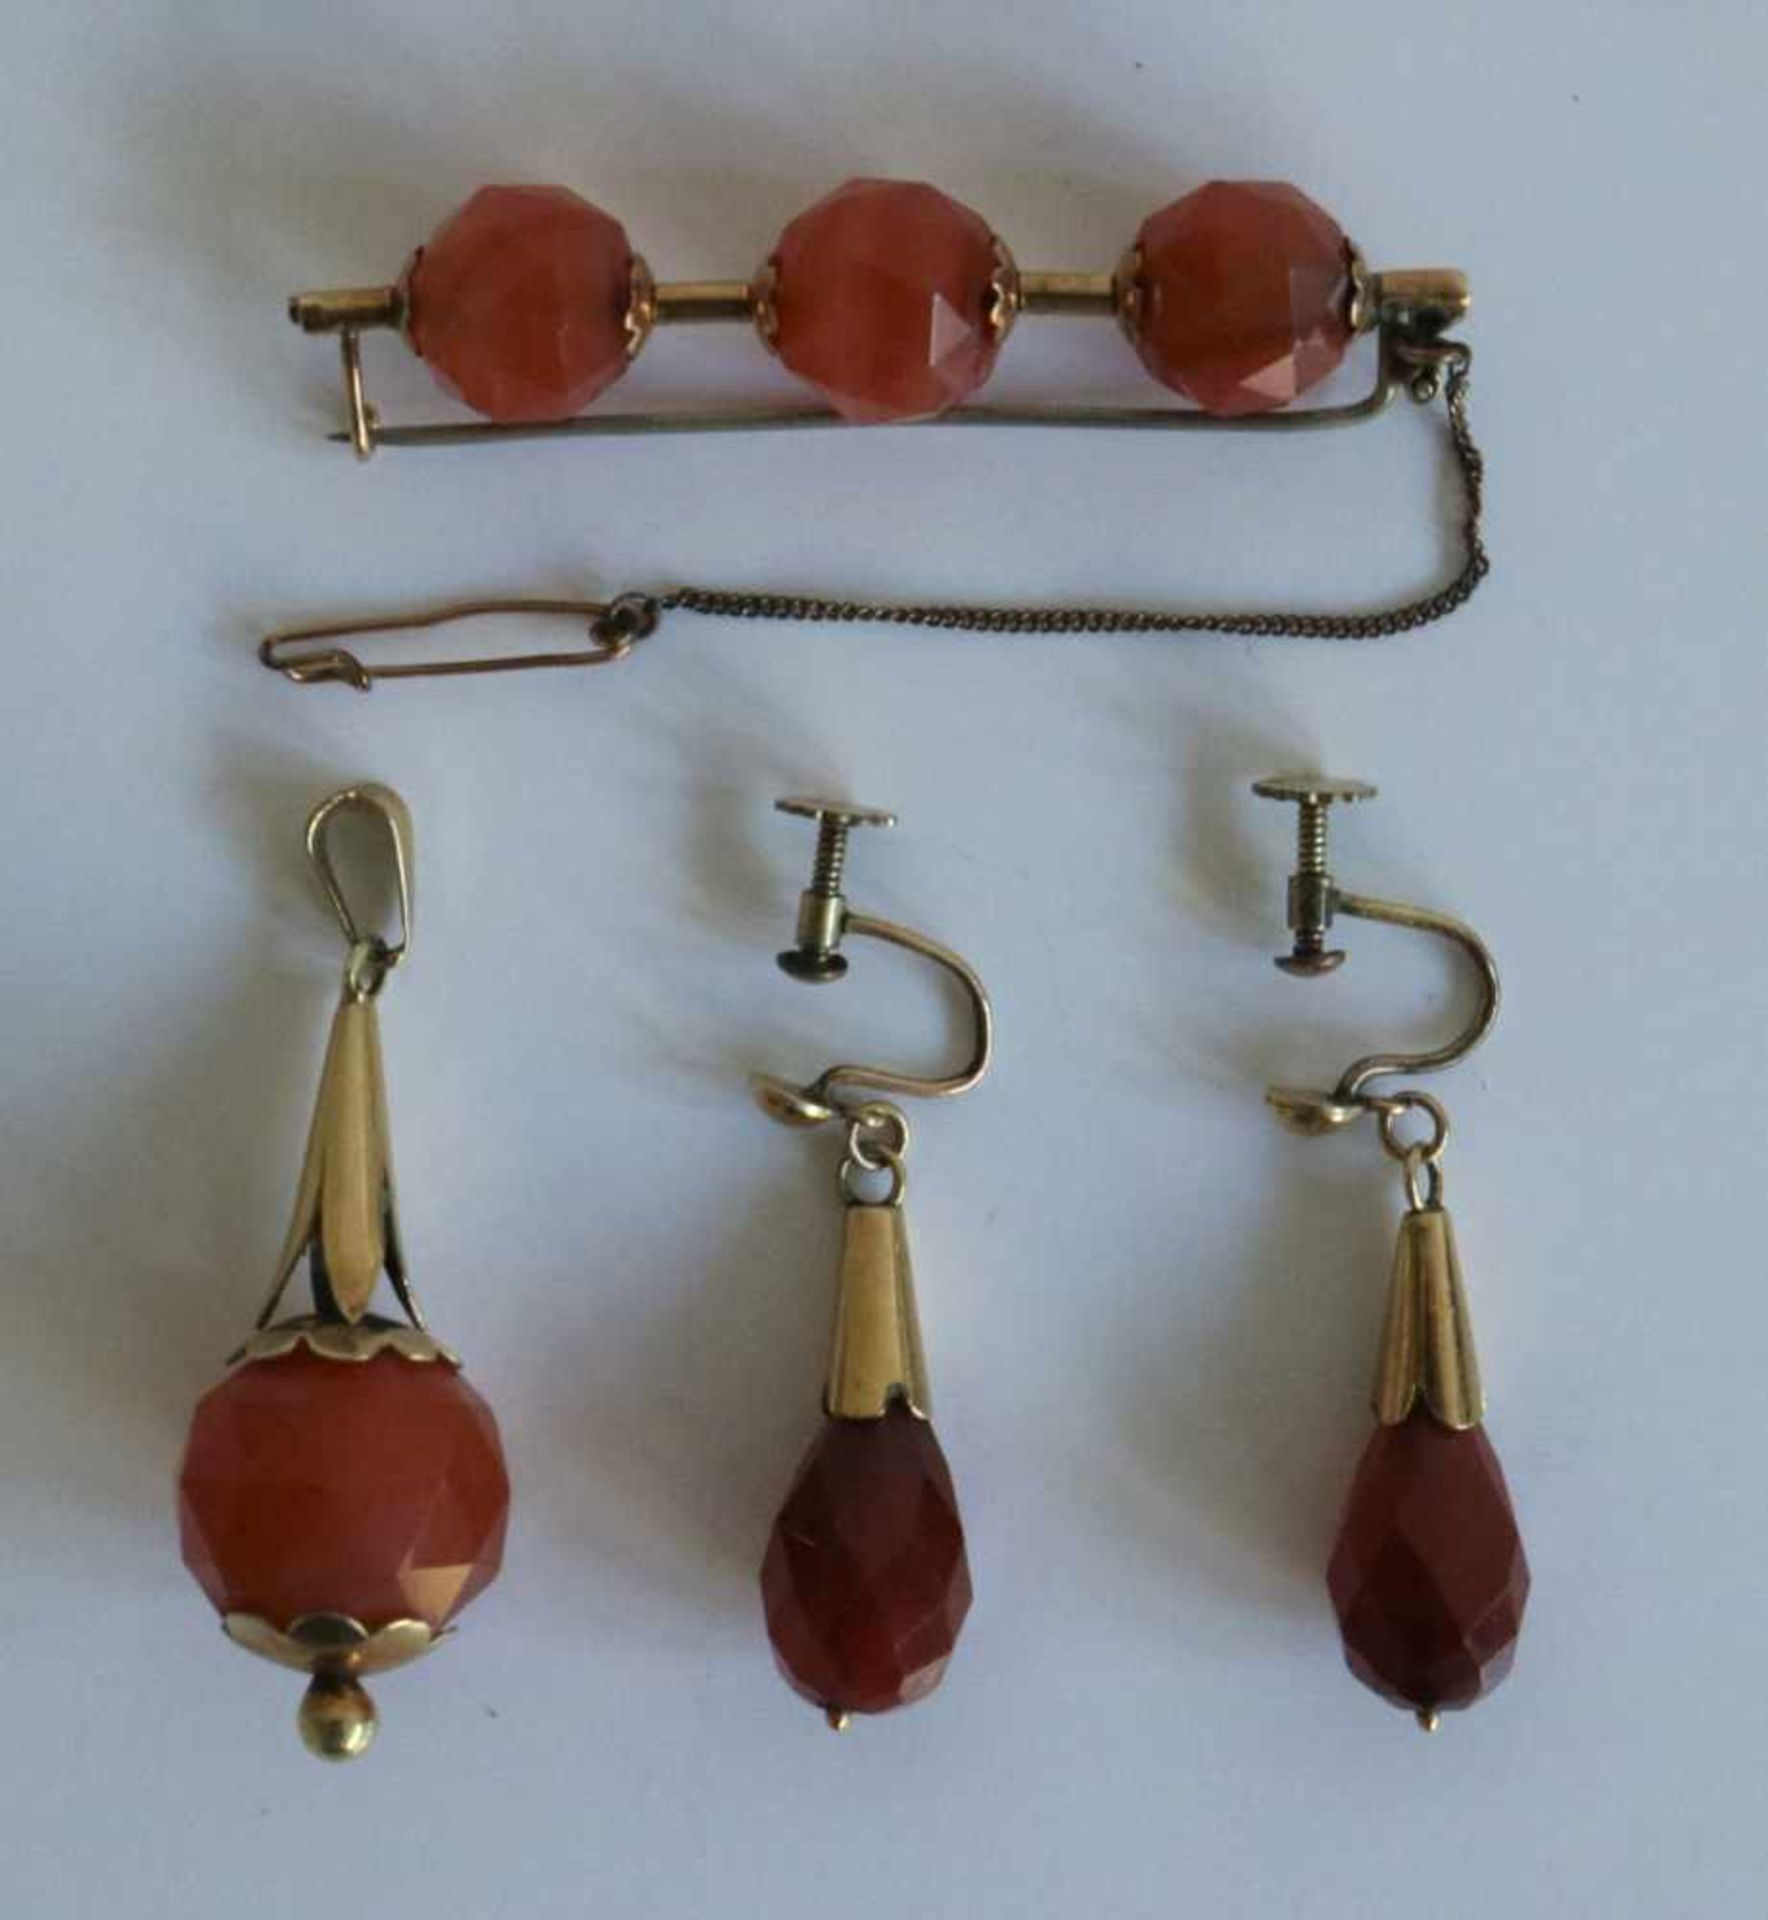 Los 17 - Jewelry set gold and agate set of earrings, pendative and brooch, Dutch L 4,5 en 5,5 cm Gold and